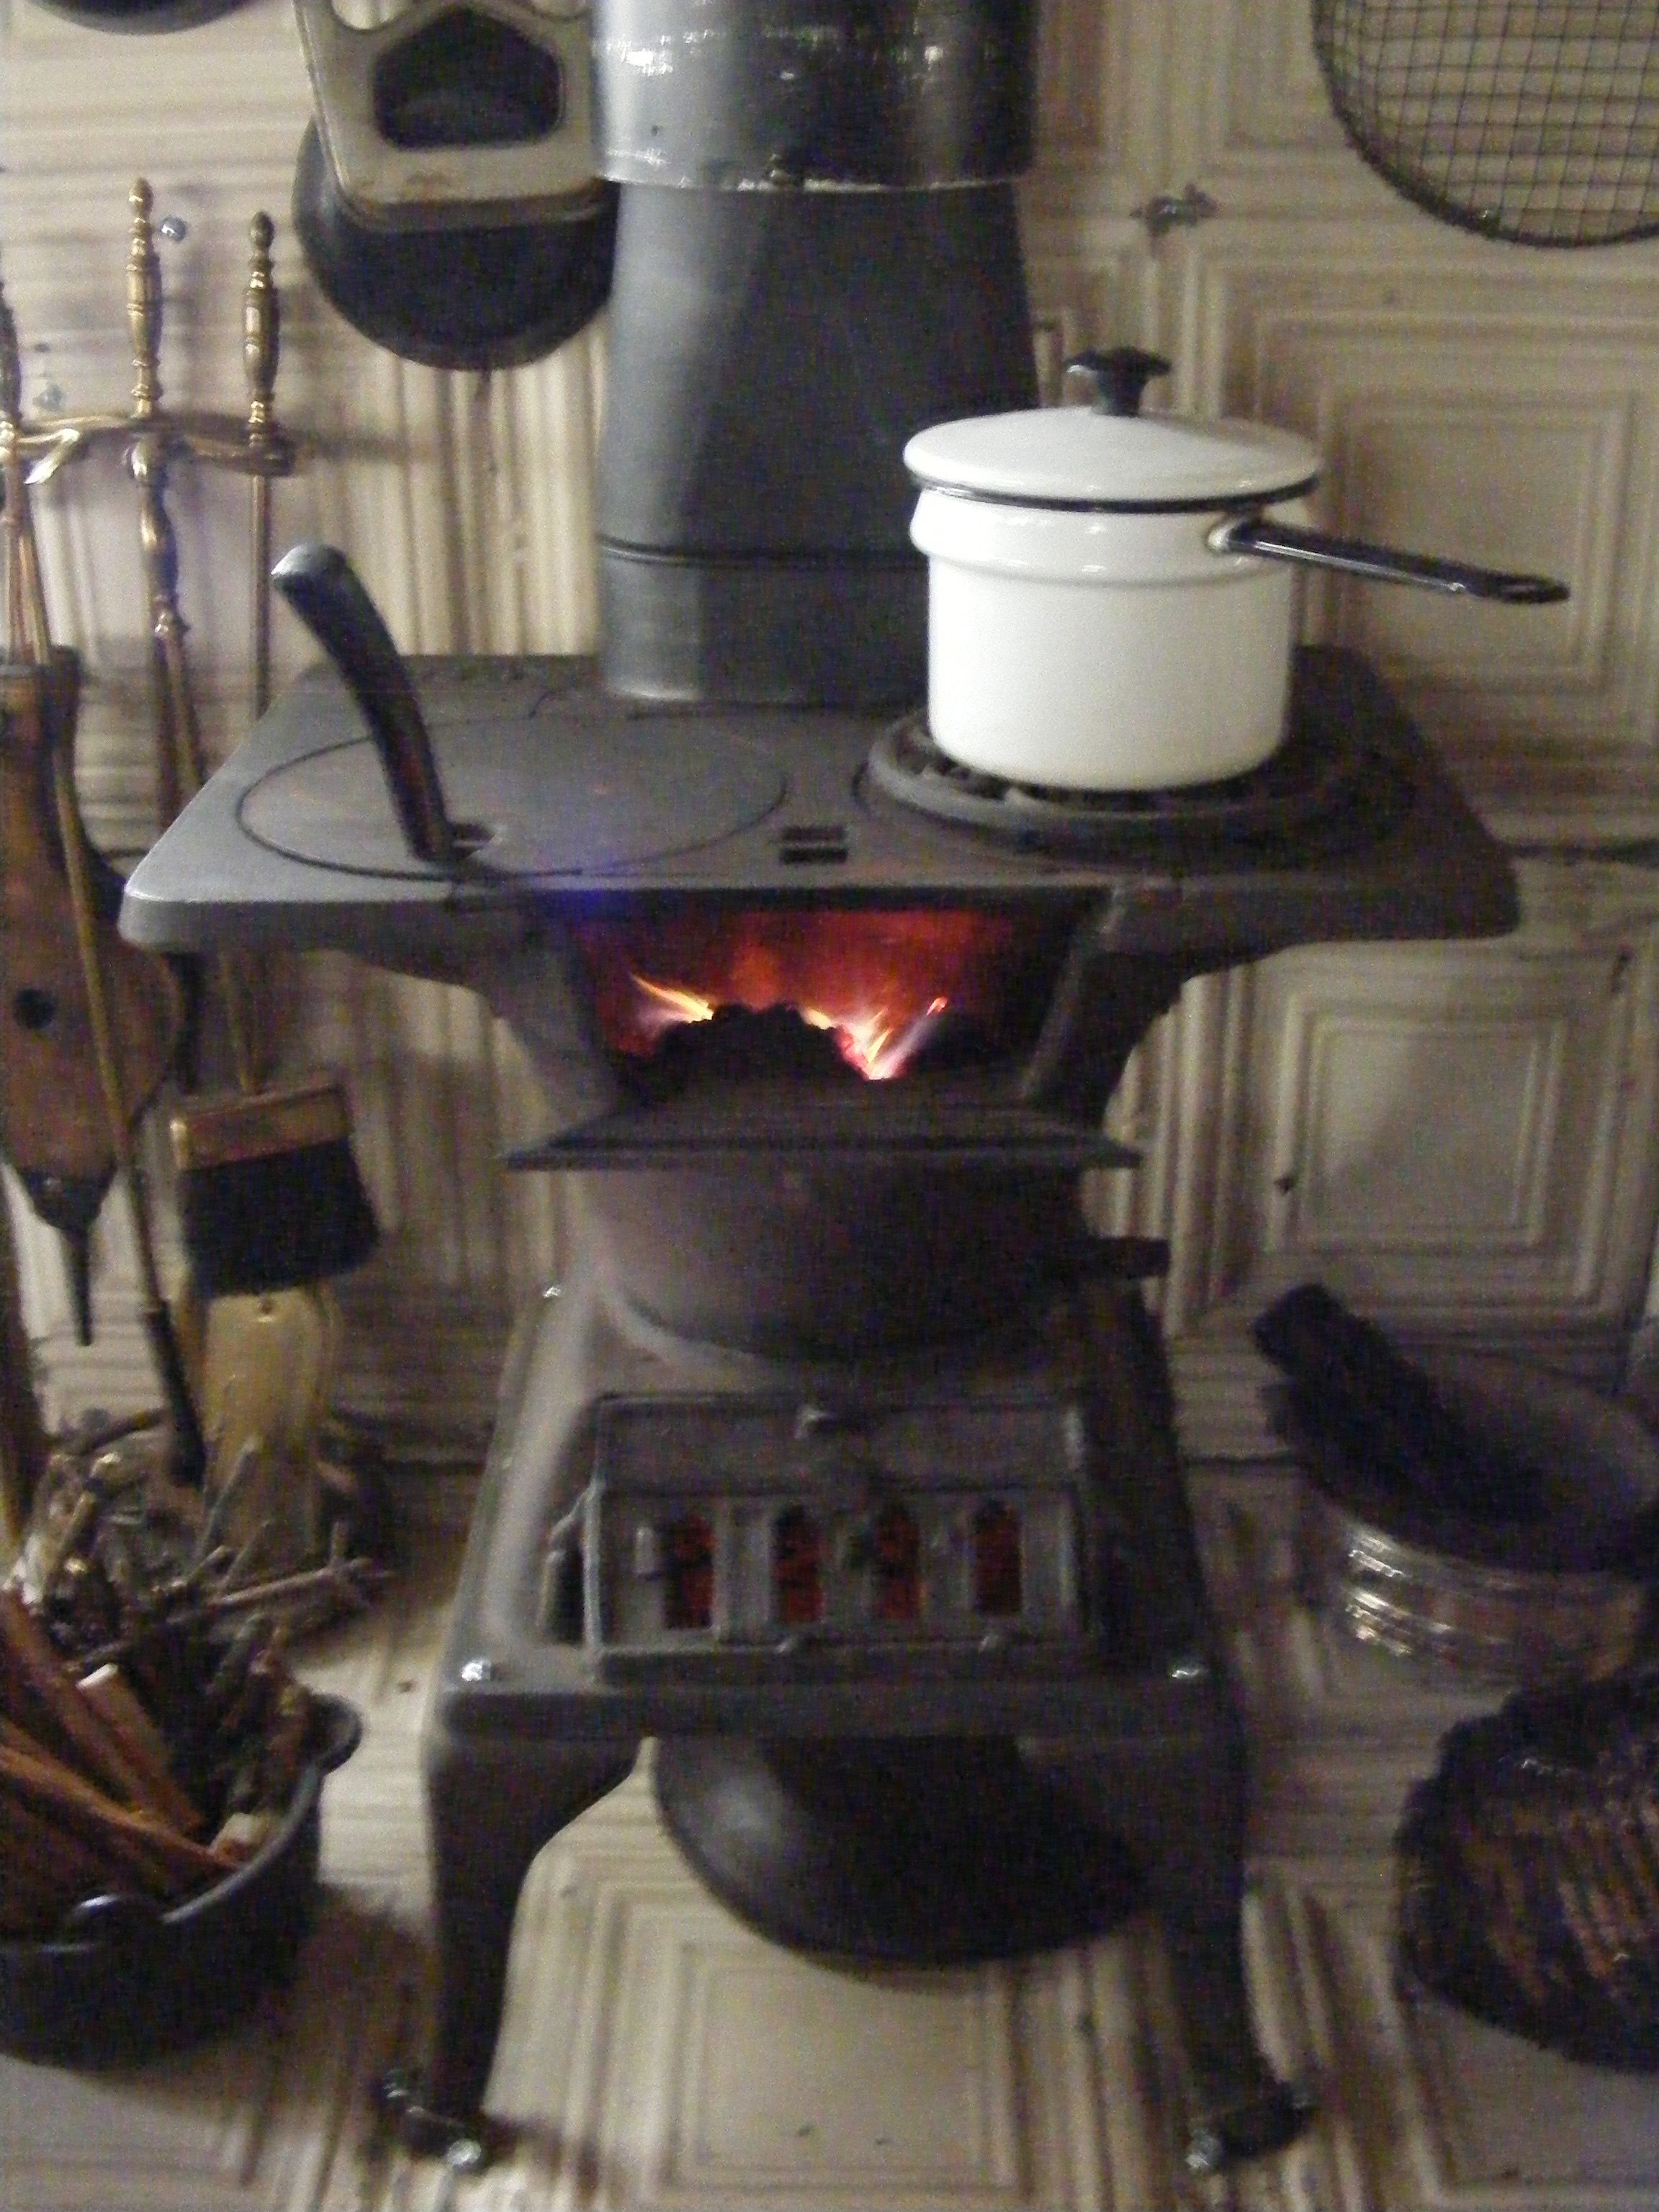 Pin By Karen Whitaker On Wood Stove In My Camper Antique Stove Wood Stove Wood Burning Stove